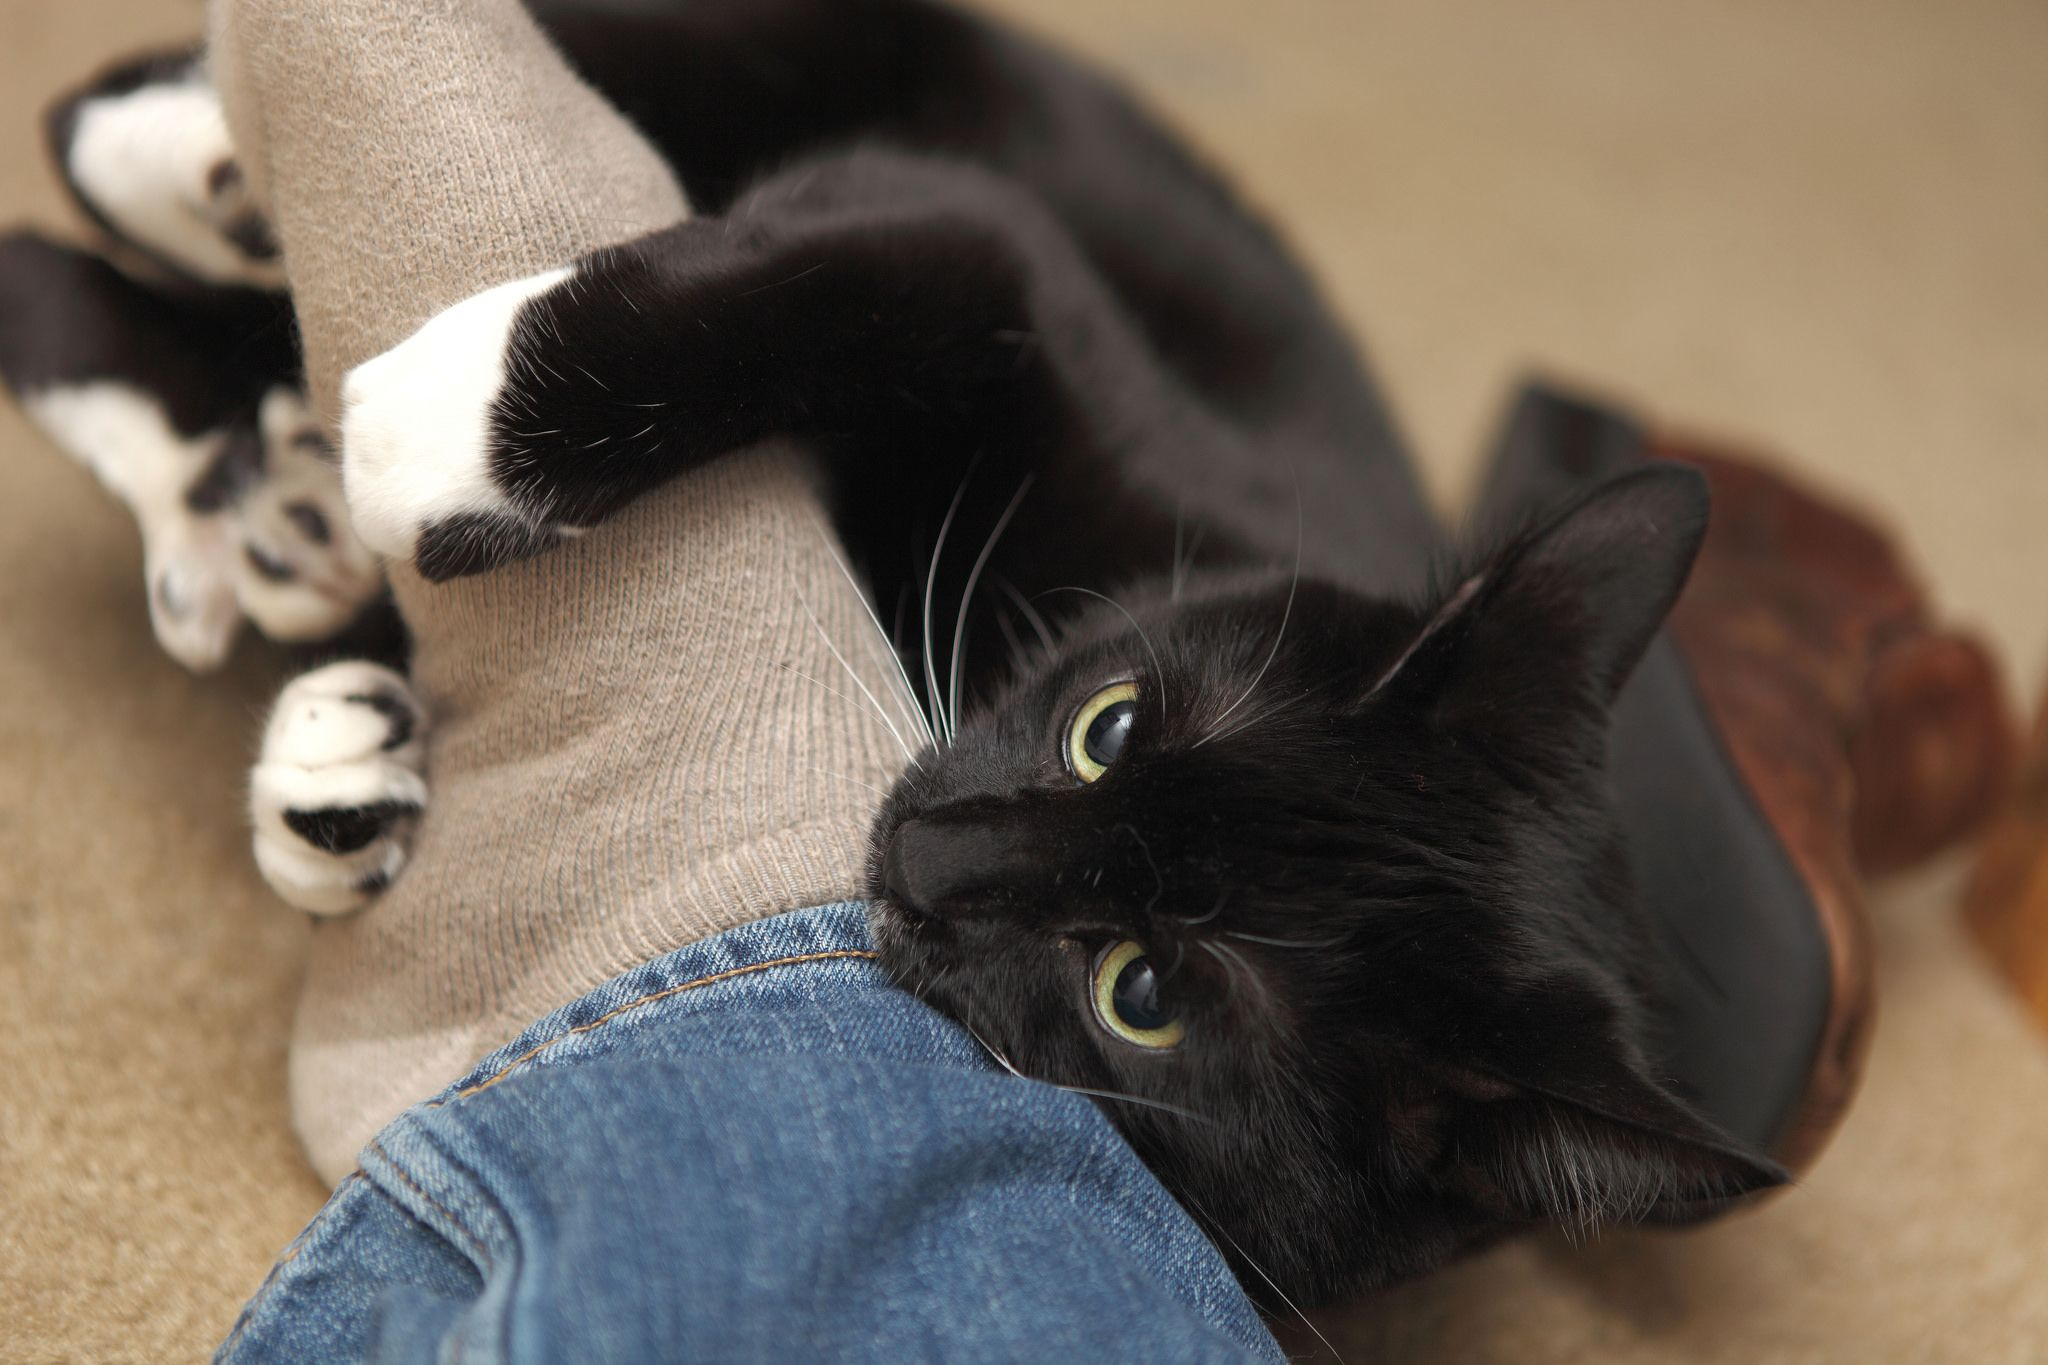 From Nail Biting To That Crazy Chatter We Re Pulling Back The Curtain On Strange Things Cats Do Cat Biting Cat Behavior Cat Language